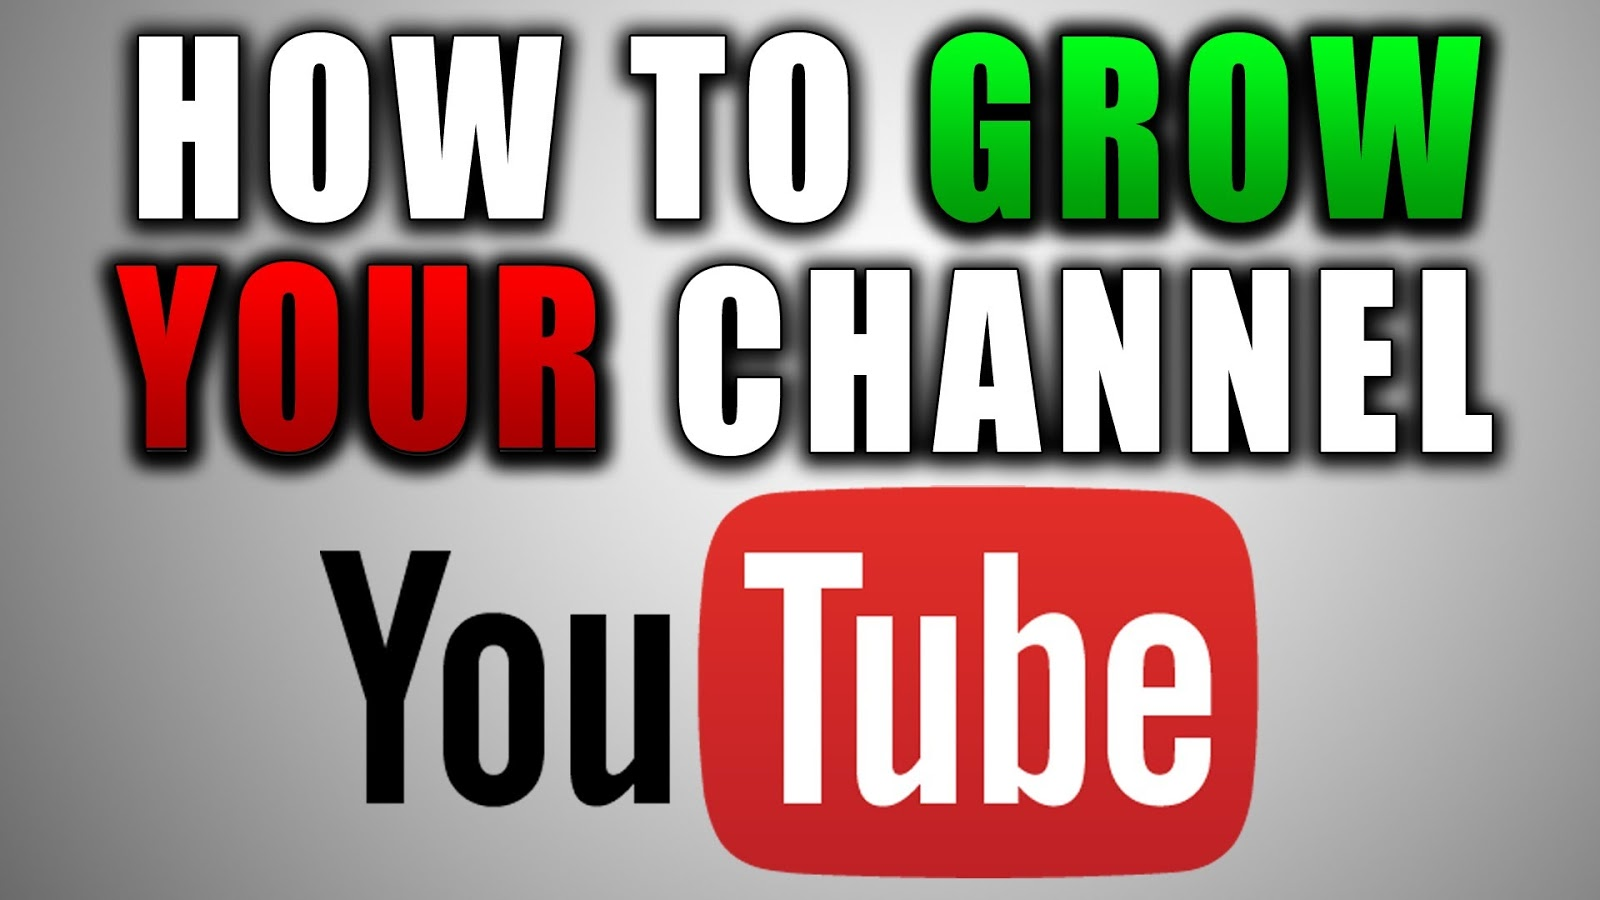 How to Promote YouTube Channel? | How to Get Views On